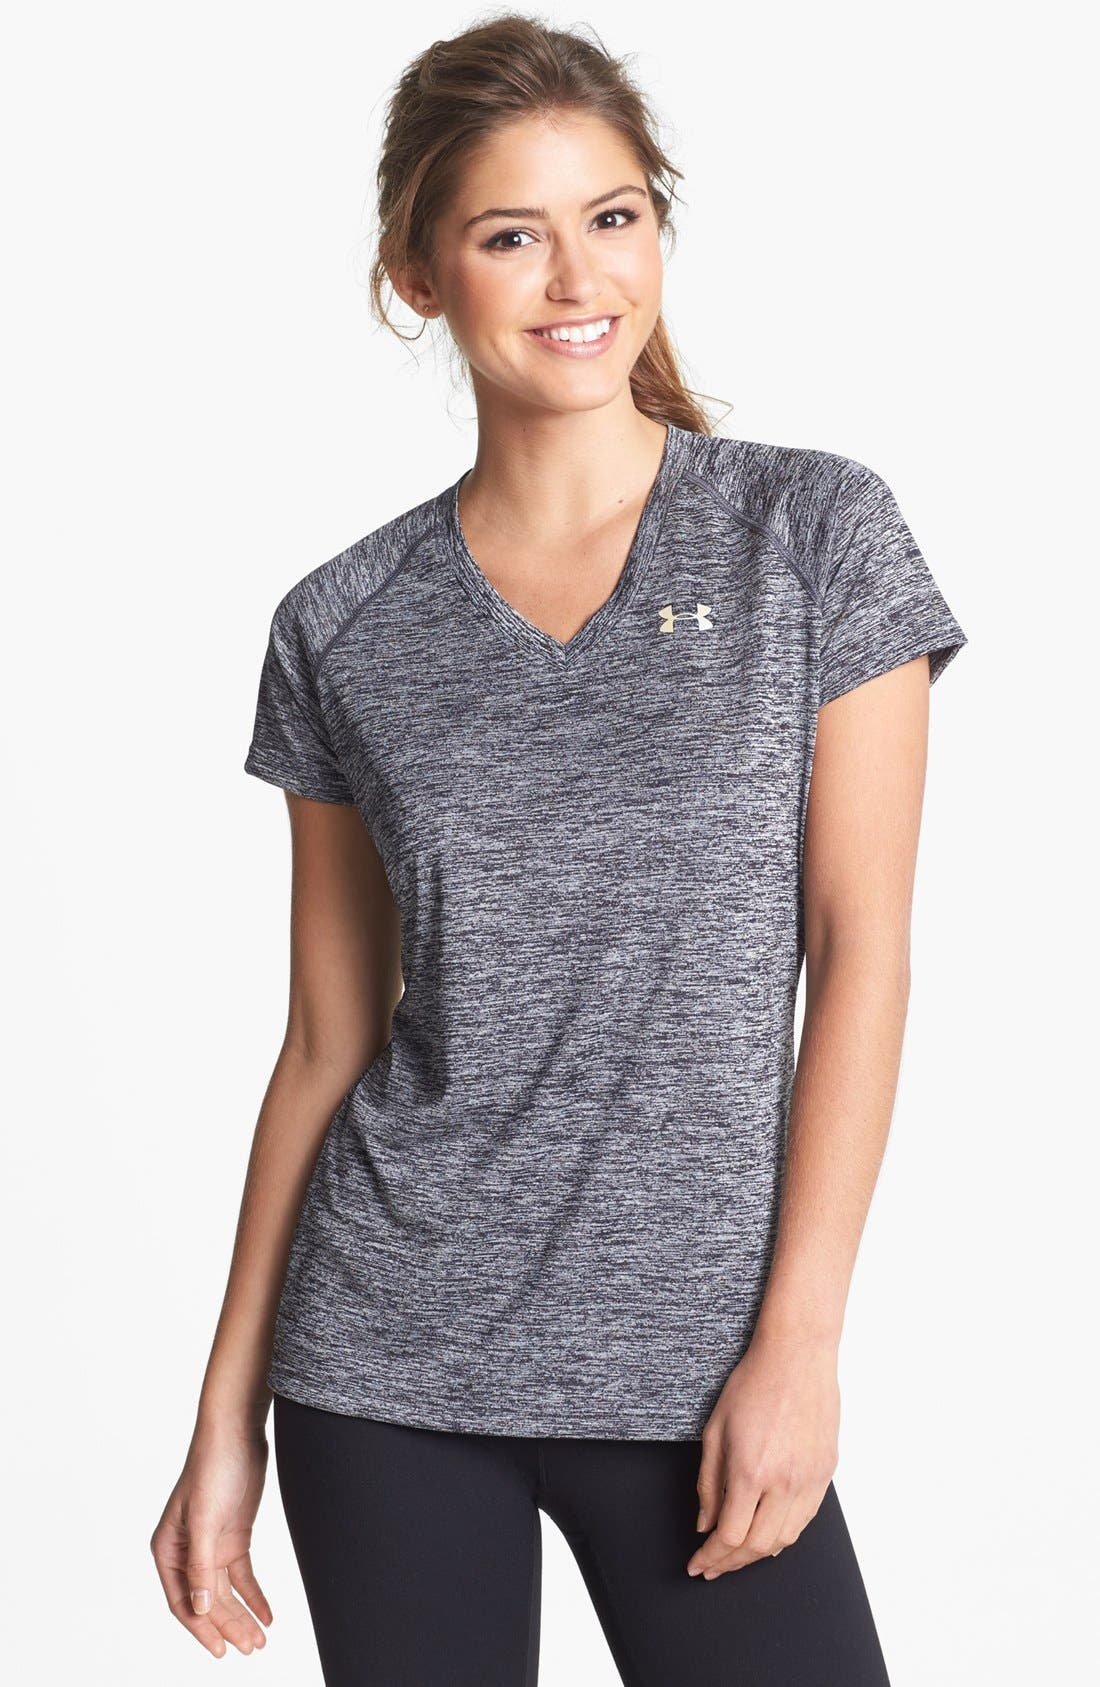 Main Image - Under Armour 'Twisted Tech' Short Sleeve Tee